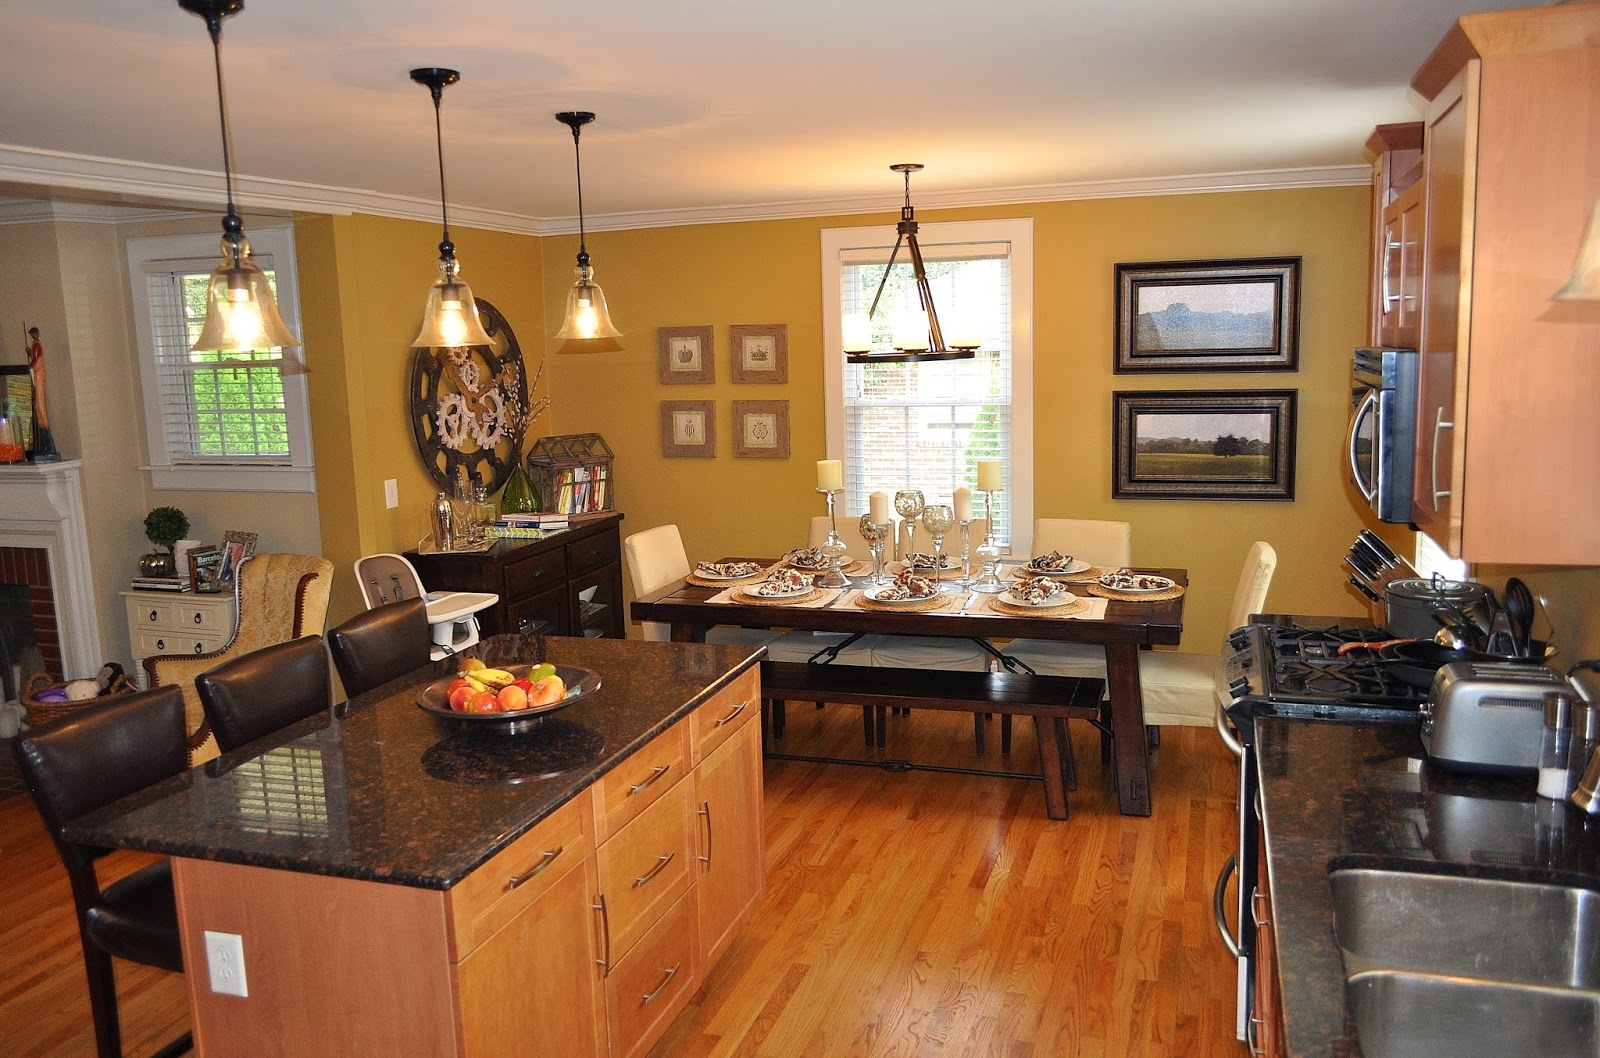 Lifestyle blog room by room house tour the kitchen dining area